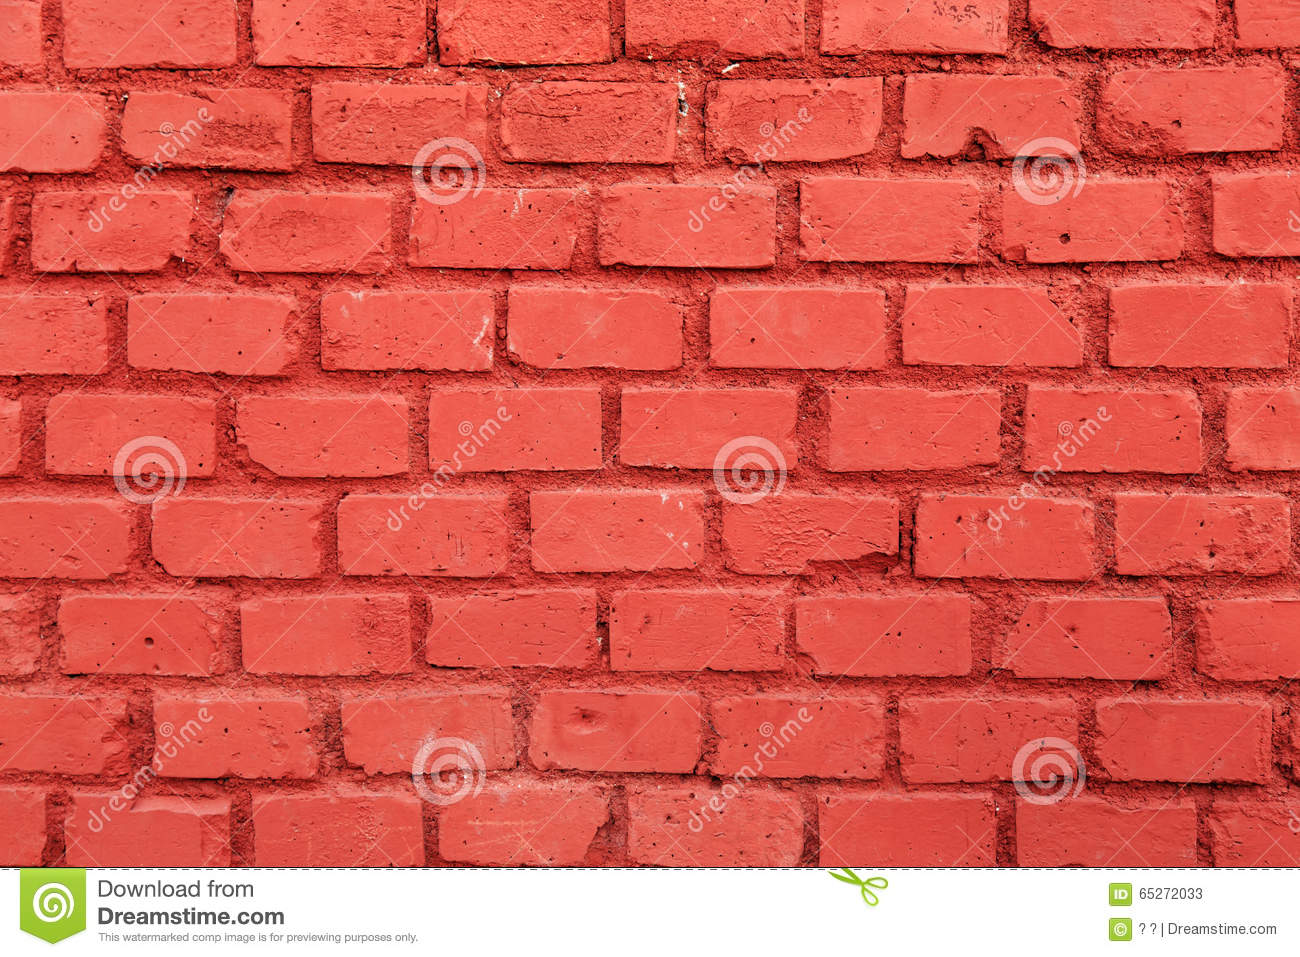 Le Mur De Briques Rouge Photo Stock Image 65272033